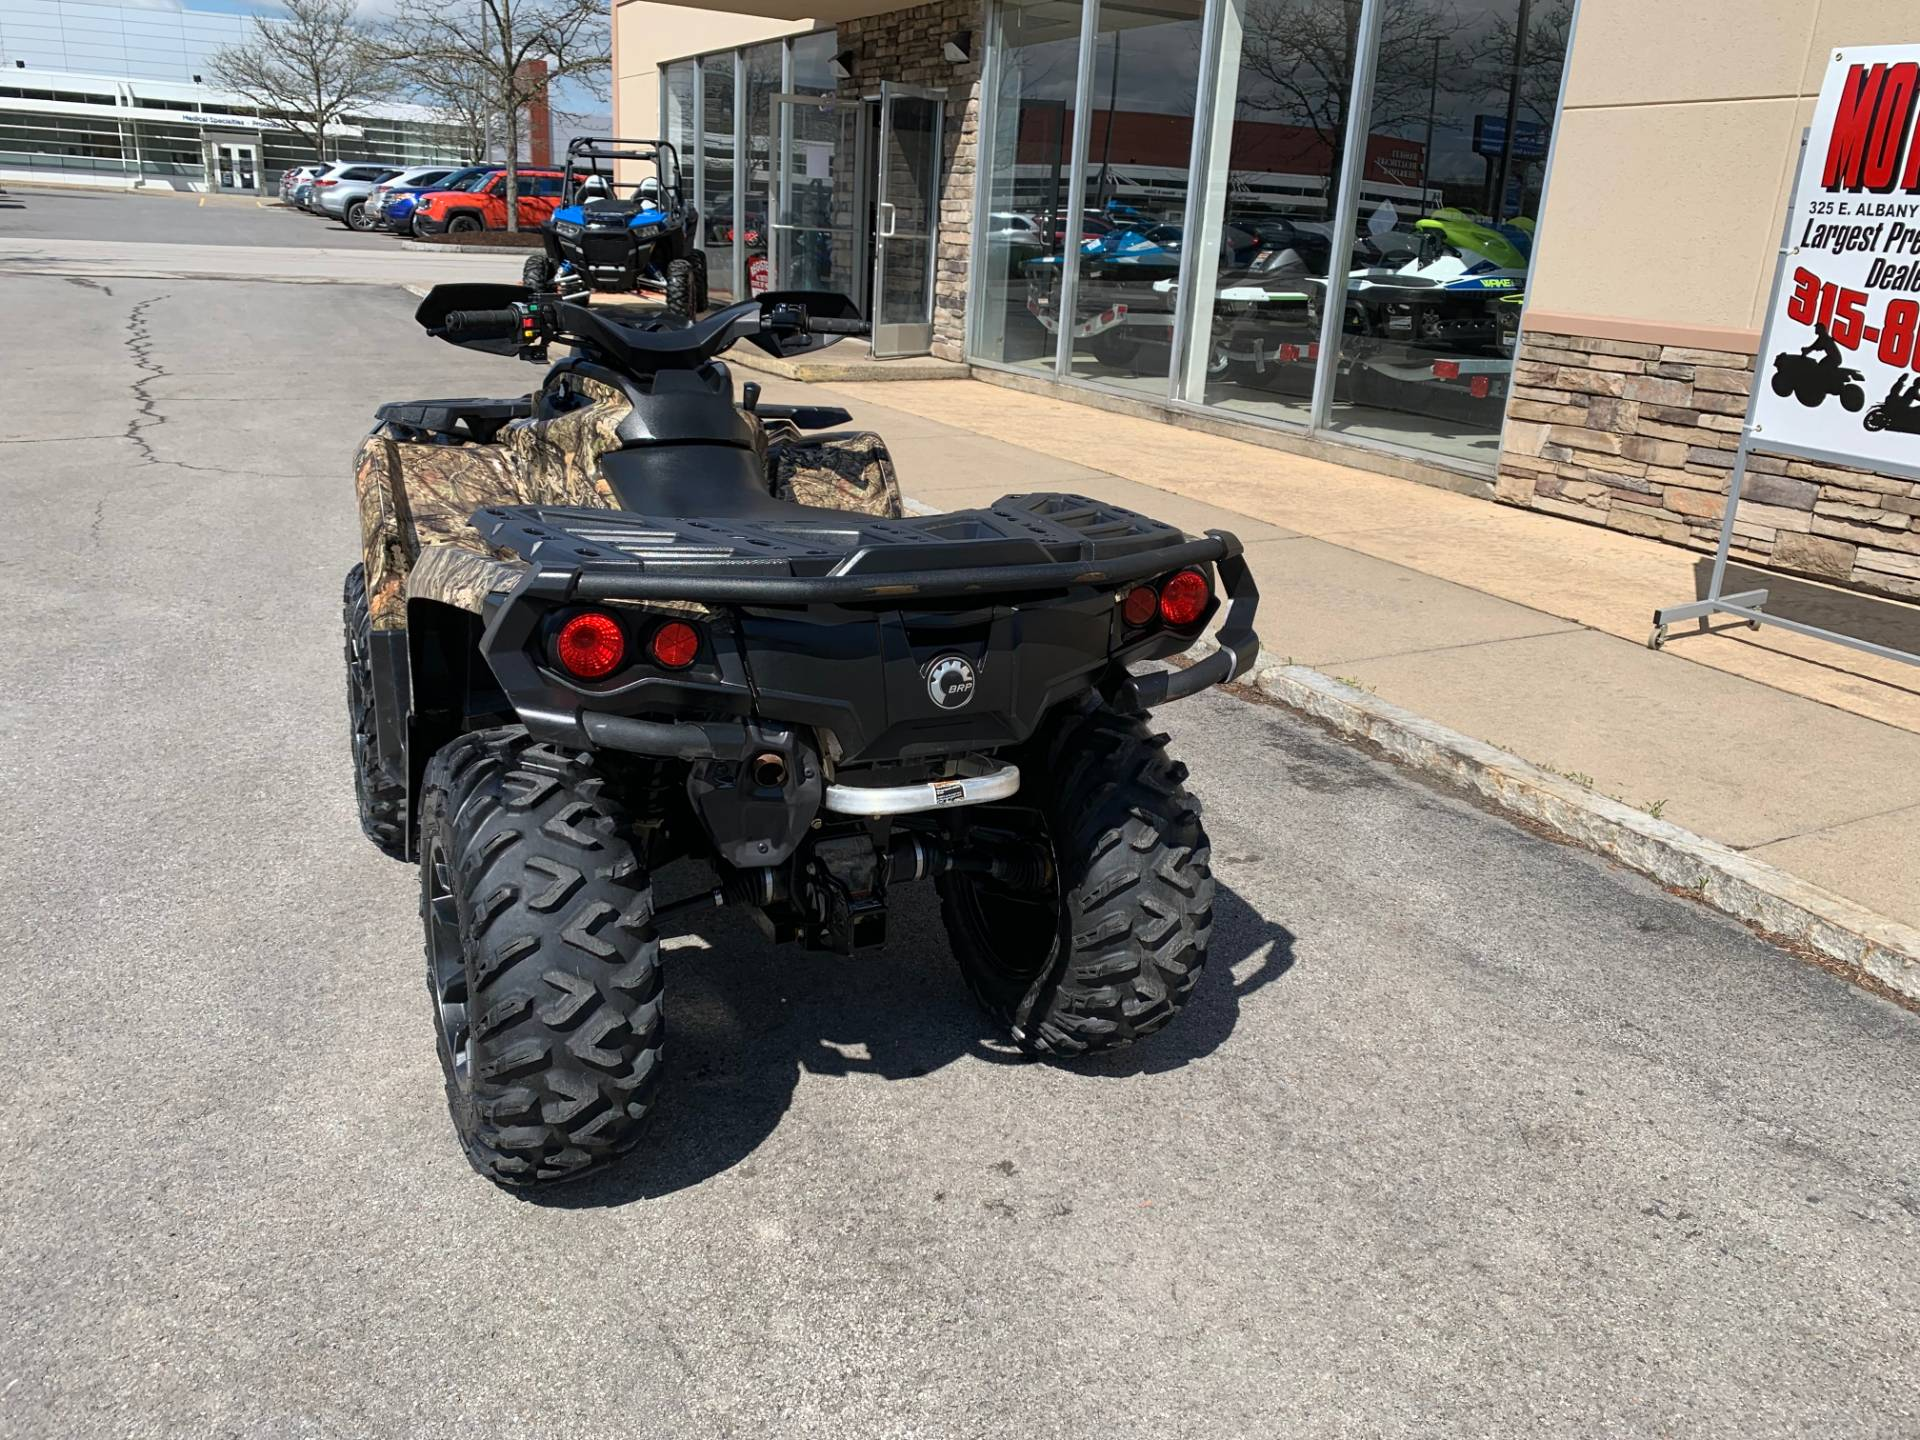 2018 Can-Am Outlander XT 850 in Herkimer, New York - Photo 7